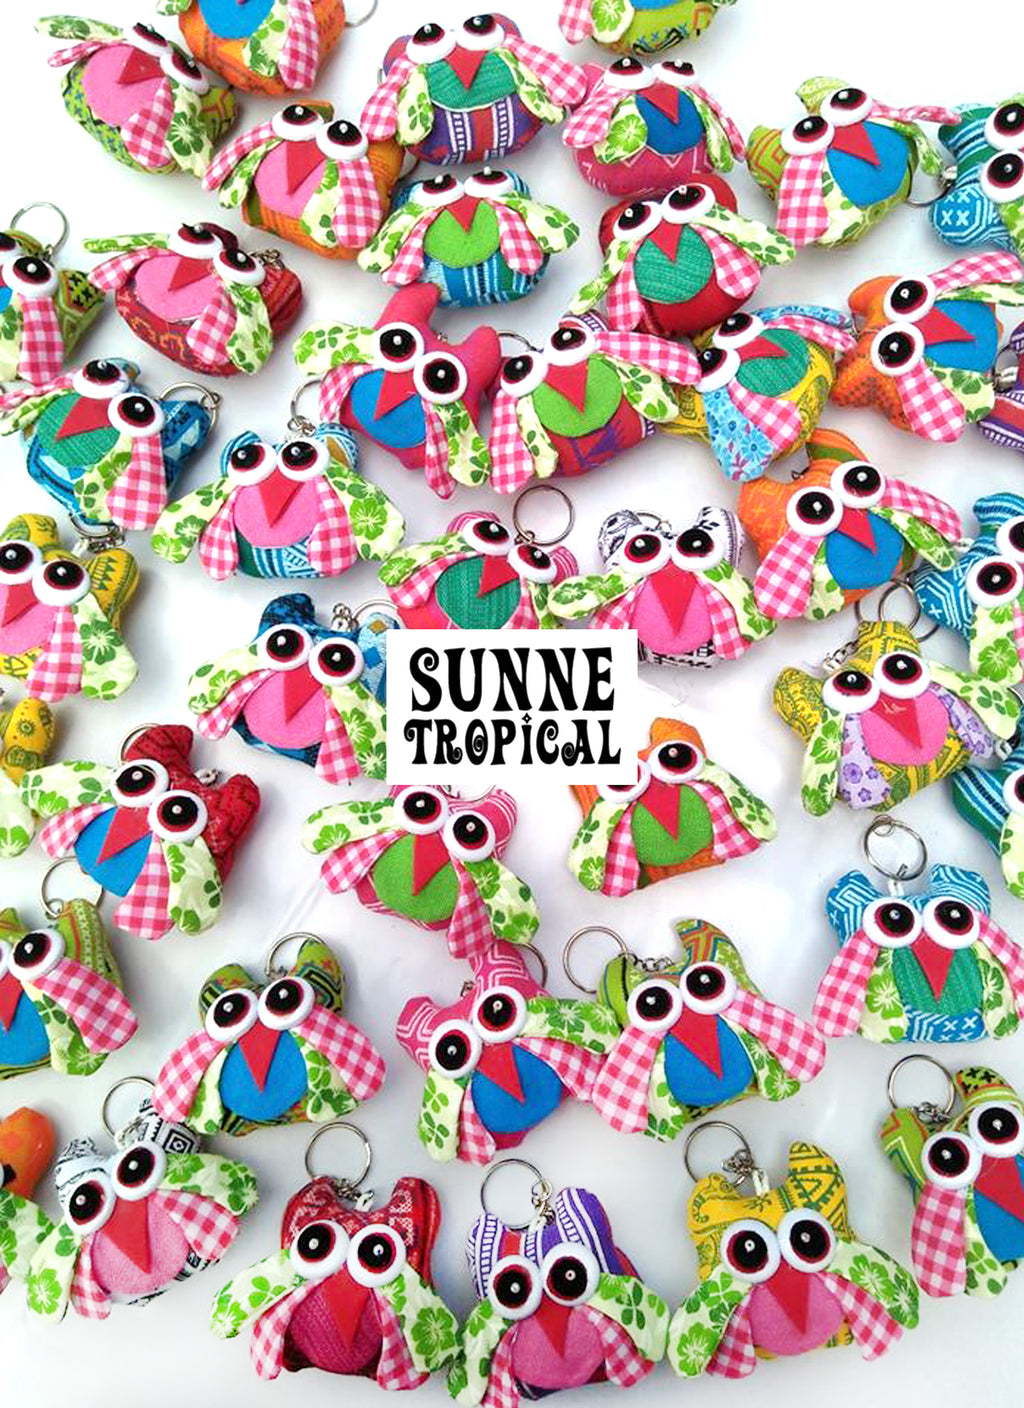 UPCYCLE Handmade Fabric Keychain ANIMAL Charm Key Rings Holder Bag Accessories Handmade Gift! so CUTE RANDOM COLOR (Pack of 4) - OWL